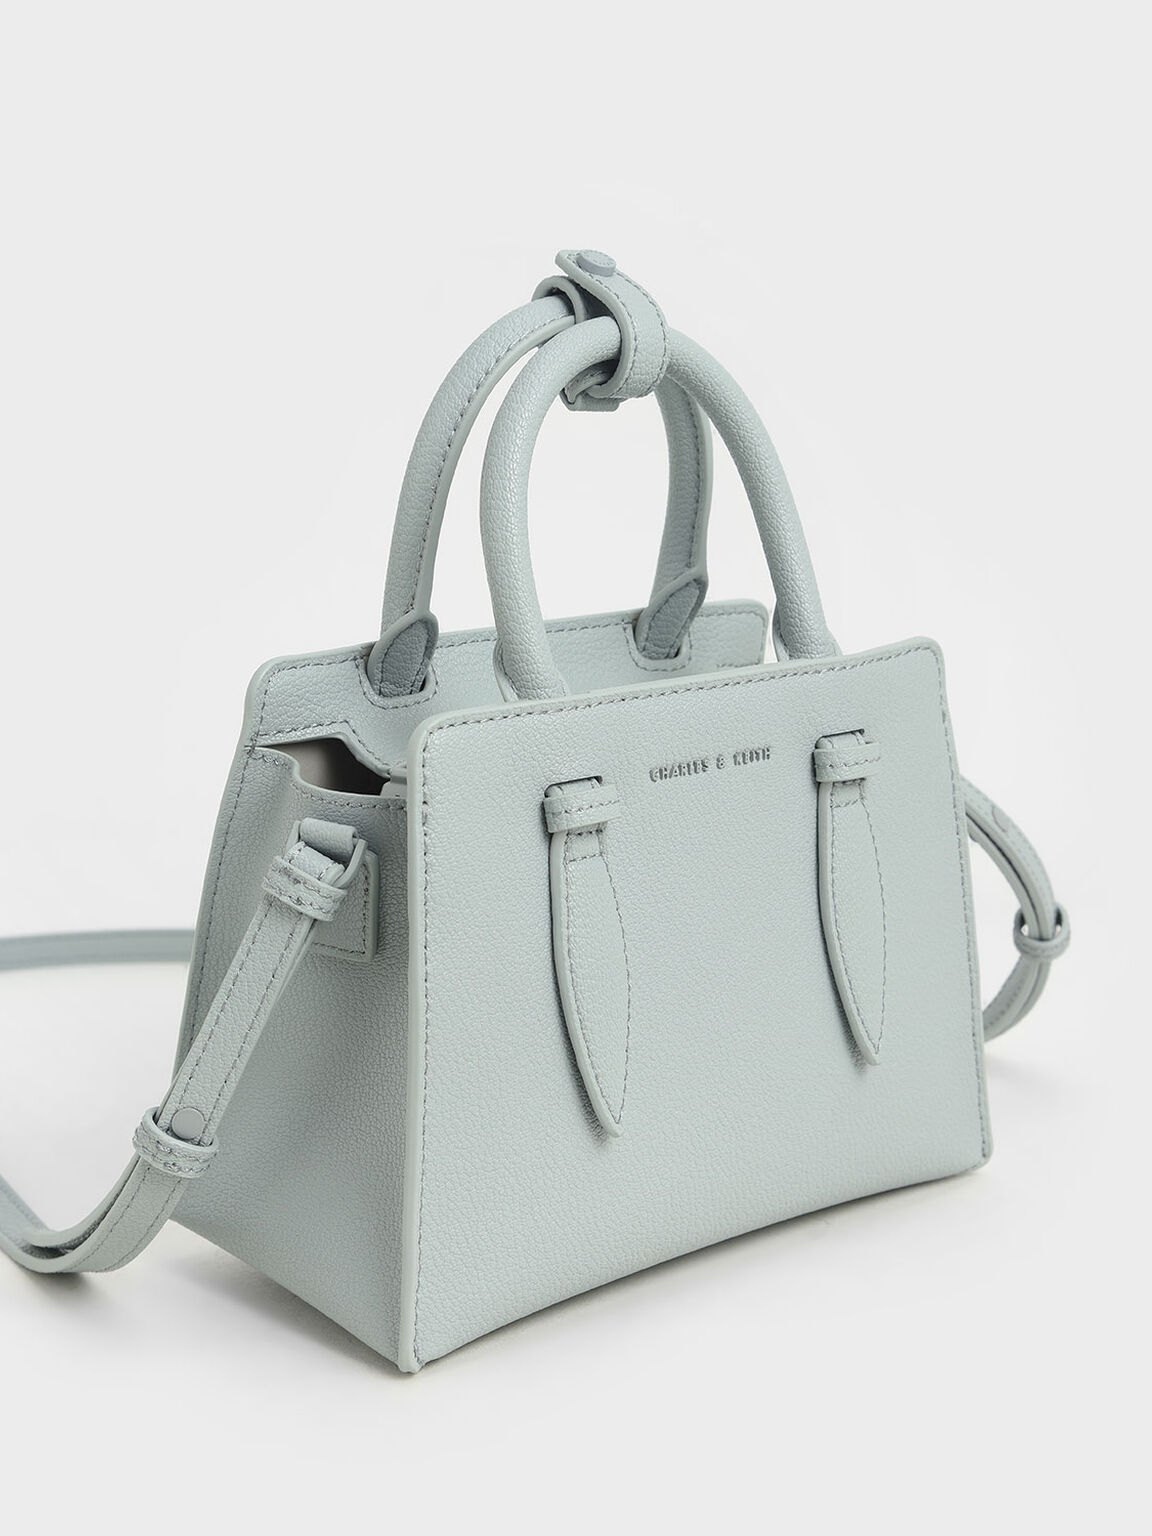 Double Top Handle Structured Bag, Light Blue, hi-res